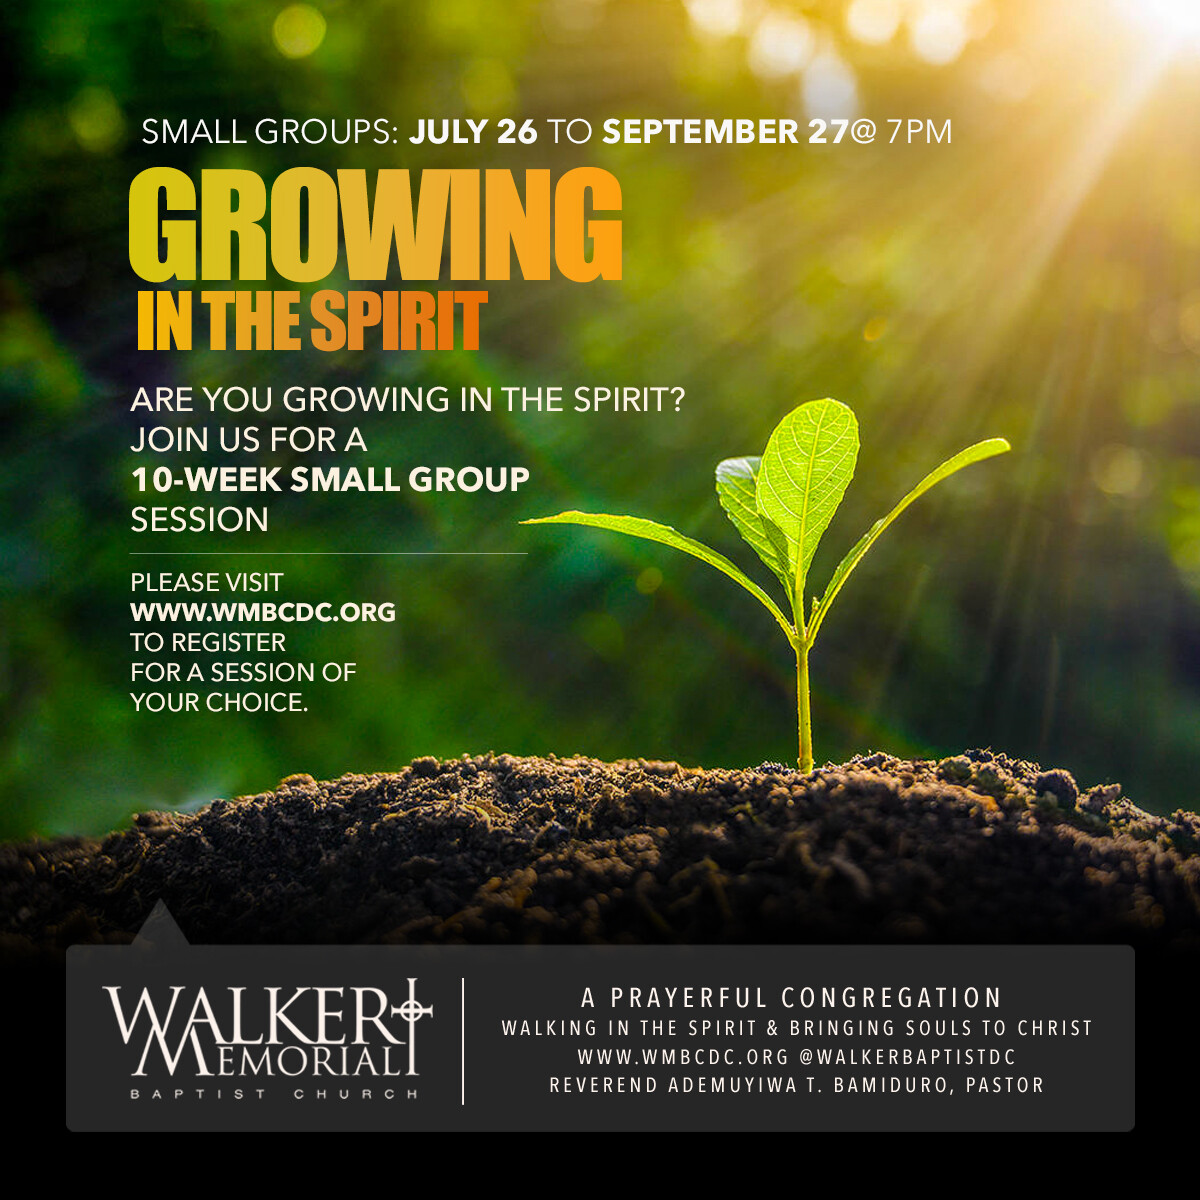 Small Group: Are You Growing In the Spirit